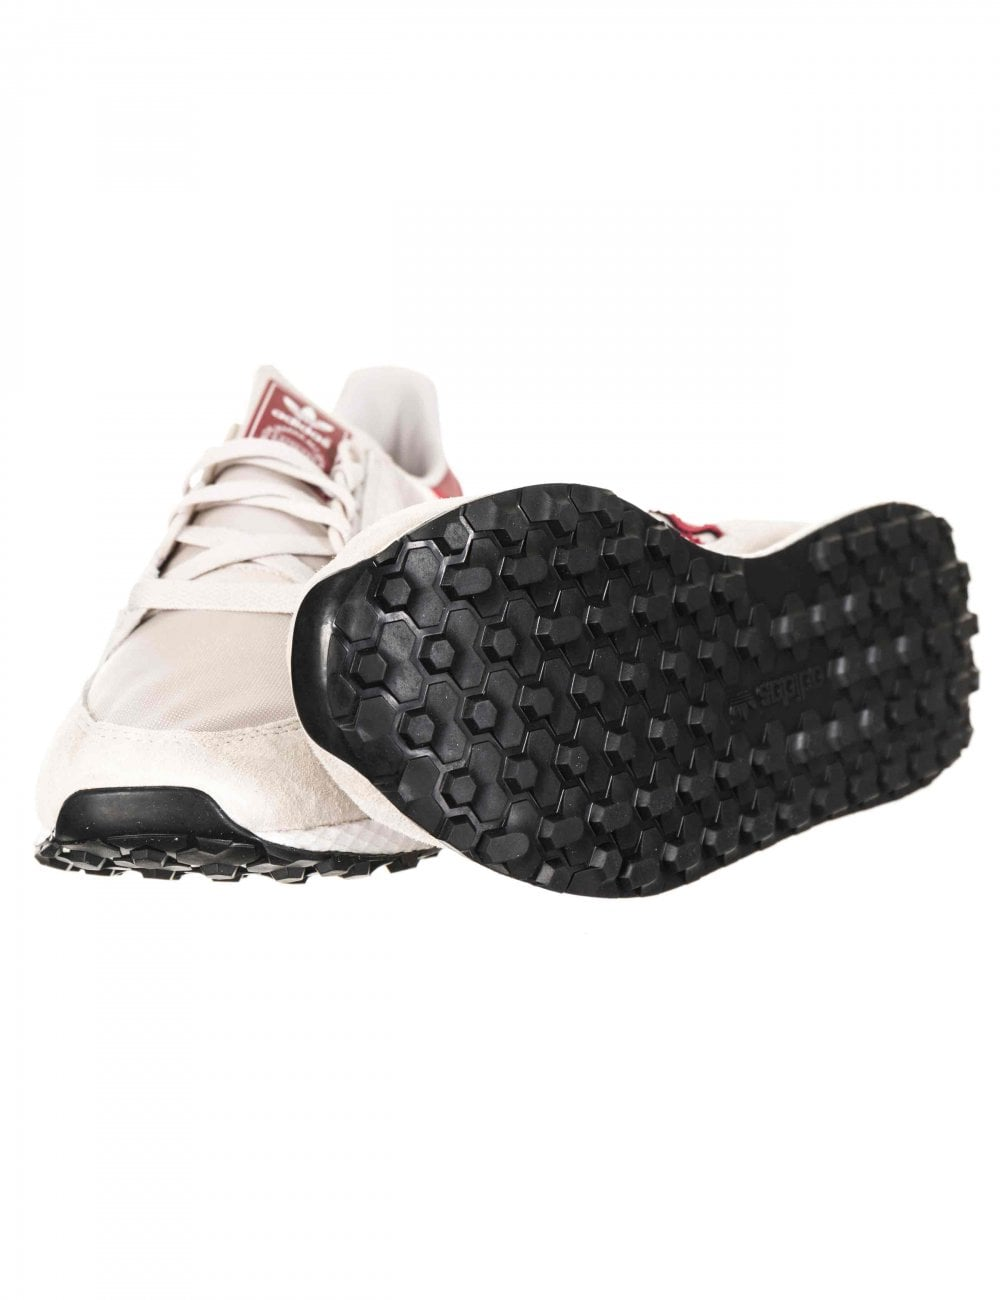 Forest Grove Forest Adidas Forest Chaussure Adidas Grove Adidas Adidas Chaussure Chaussure Grove Chaussure Forest 4L3Rj5Aq